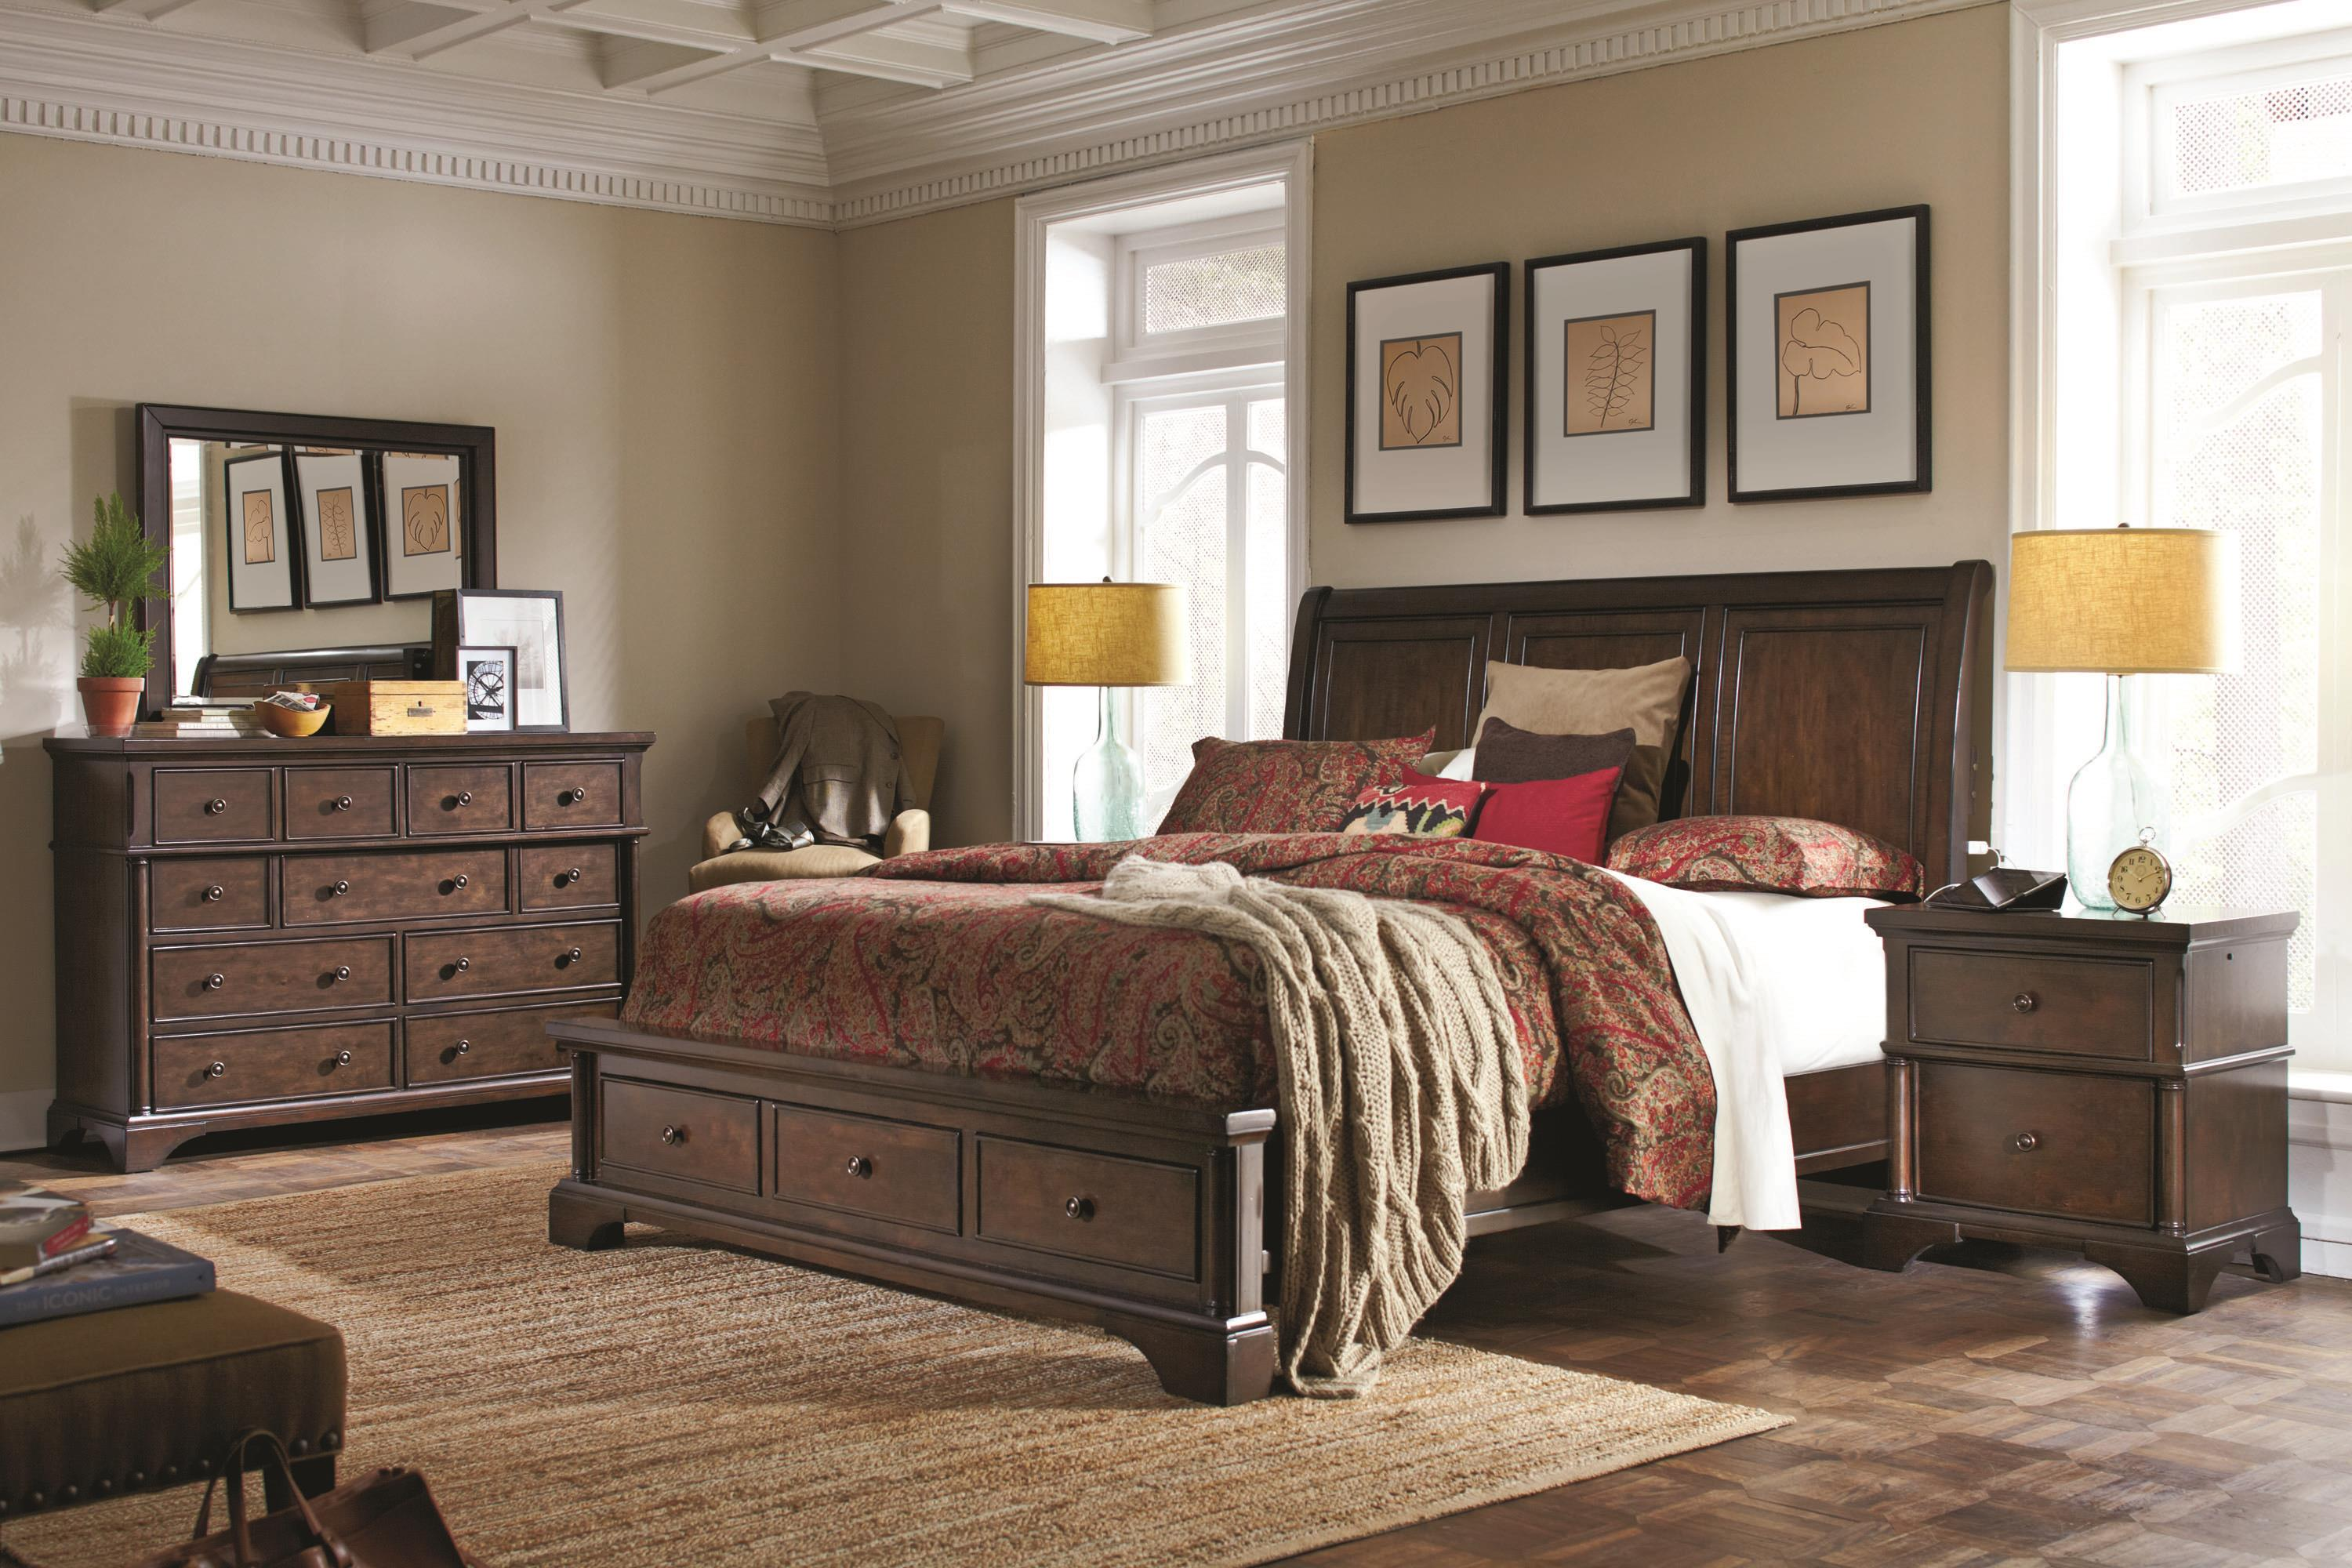 Bancroft King Bedroom Group by Aspenhome at Stoney Creek Furniture